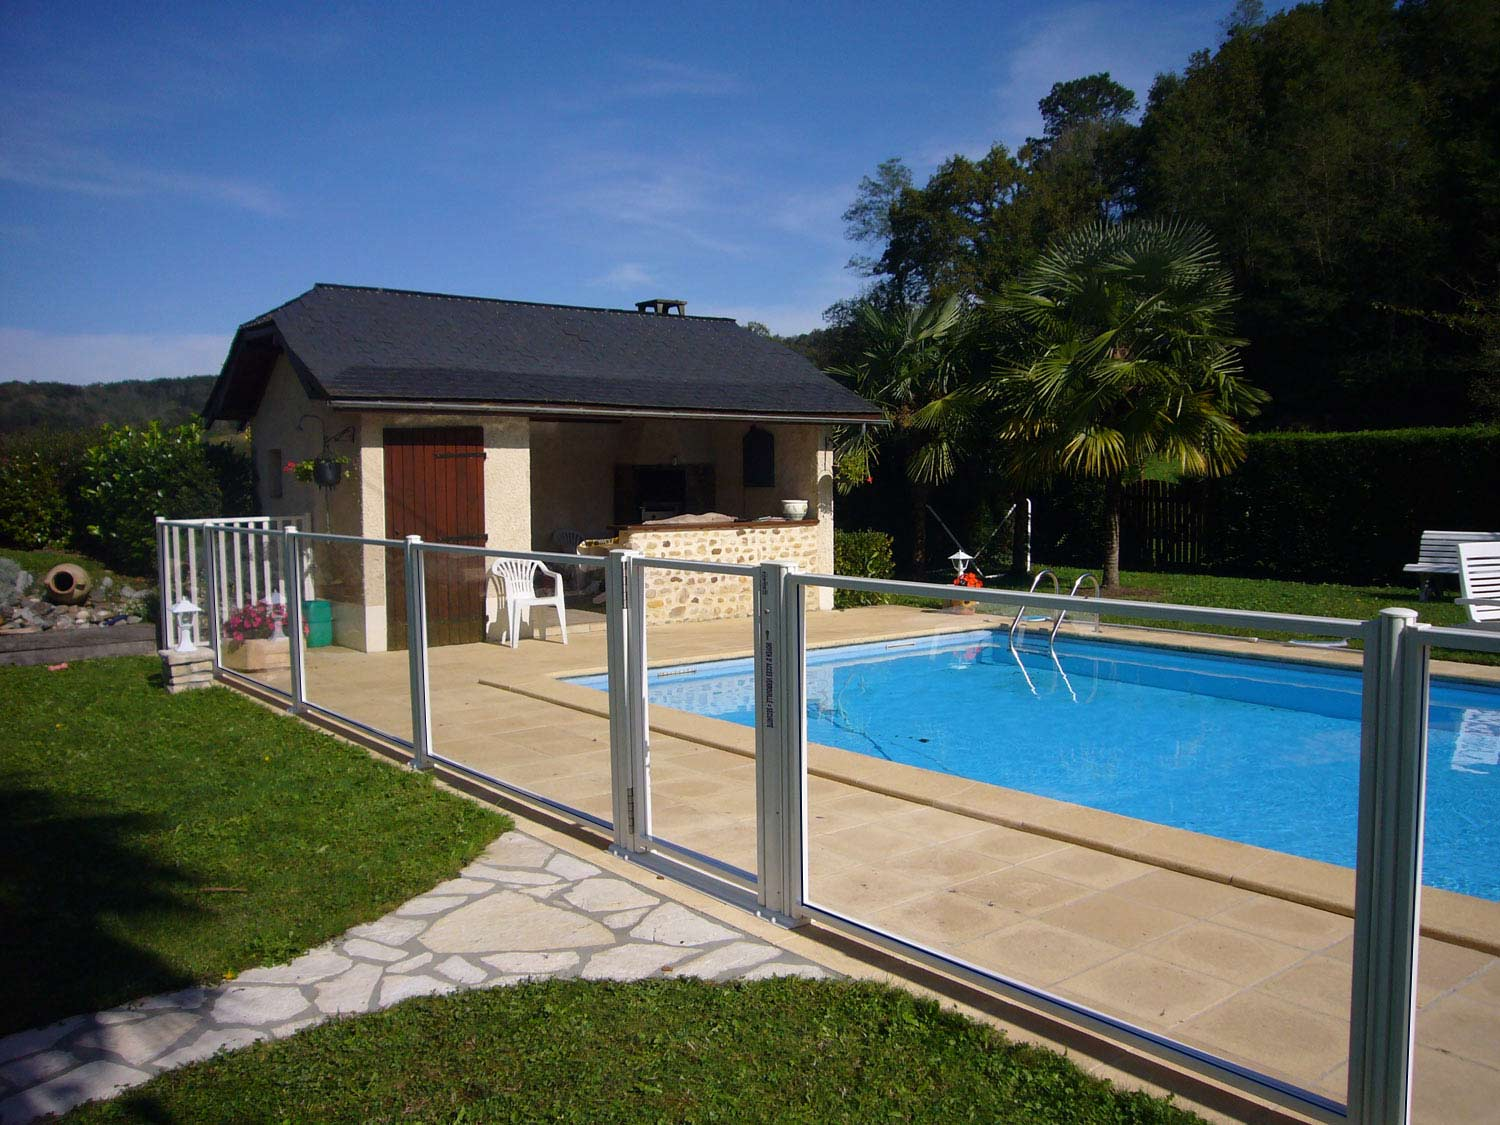 Barriere piscine for Barriere piscine